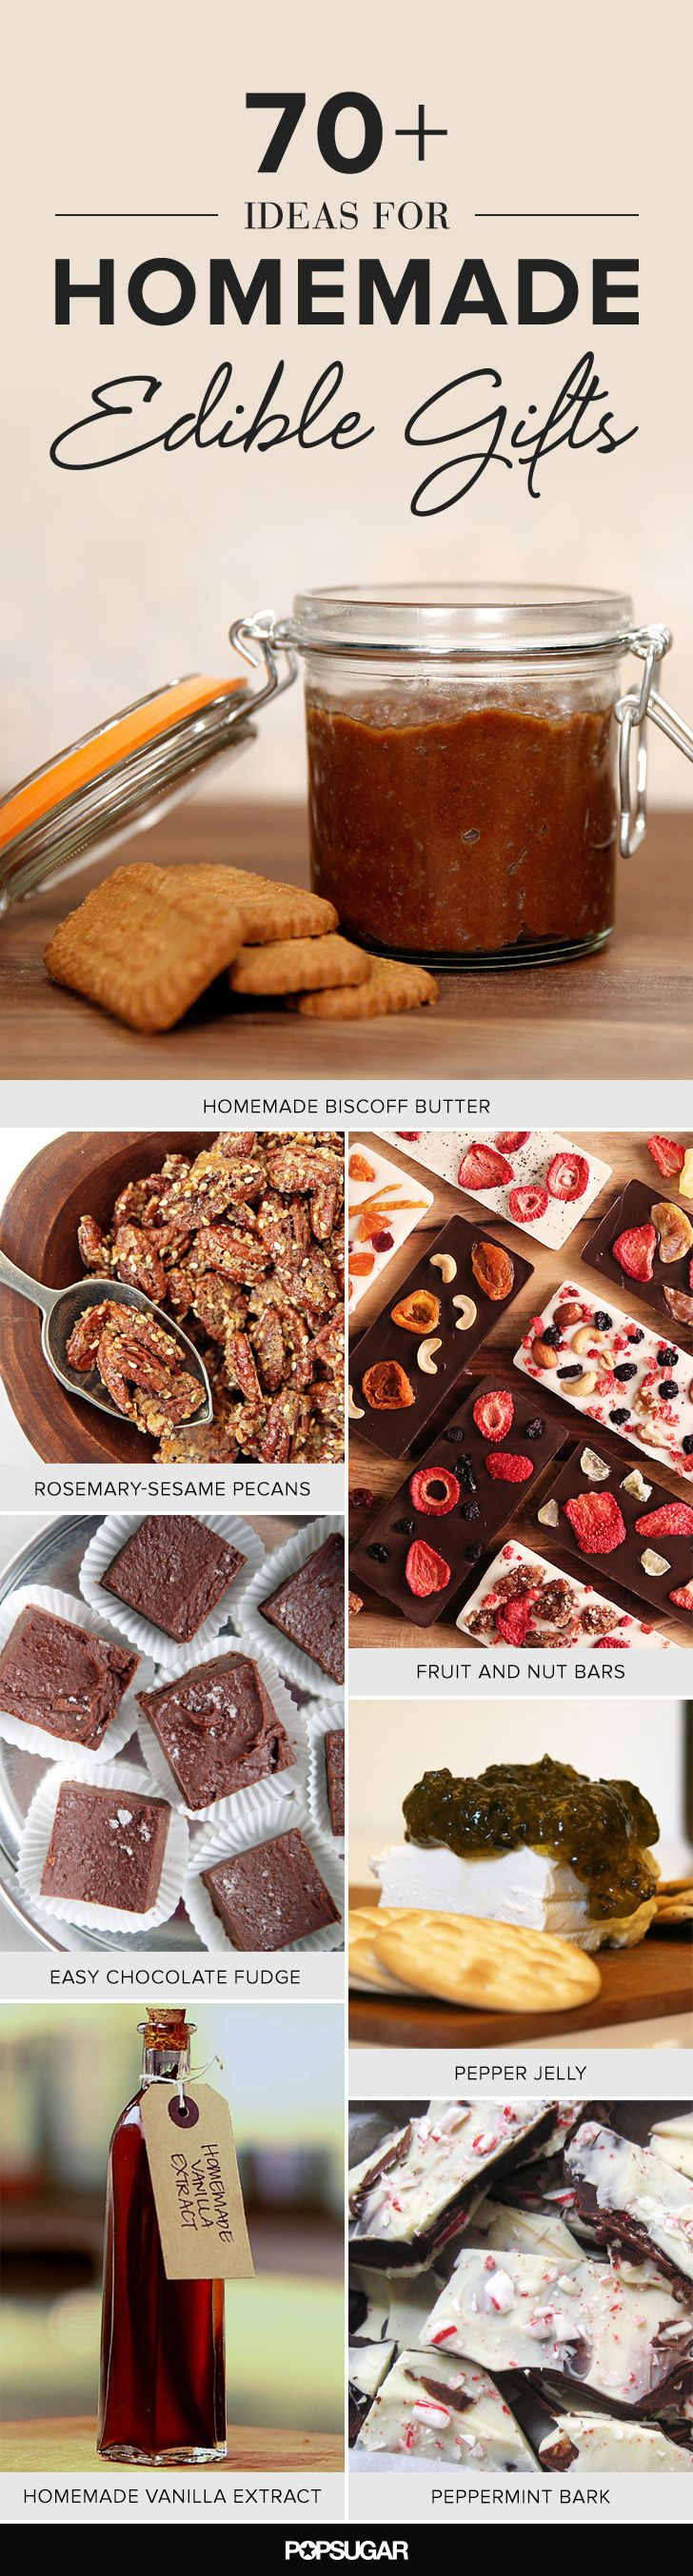 100 Ideas For Homemade Edible Gifts | food ideas | Pinterest ...